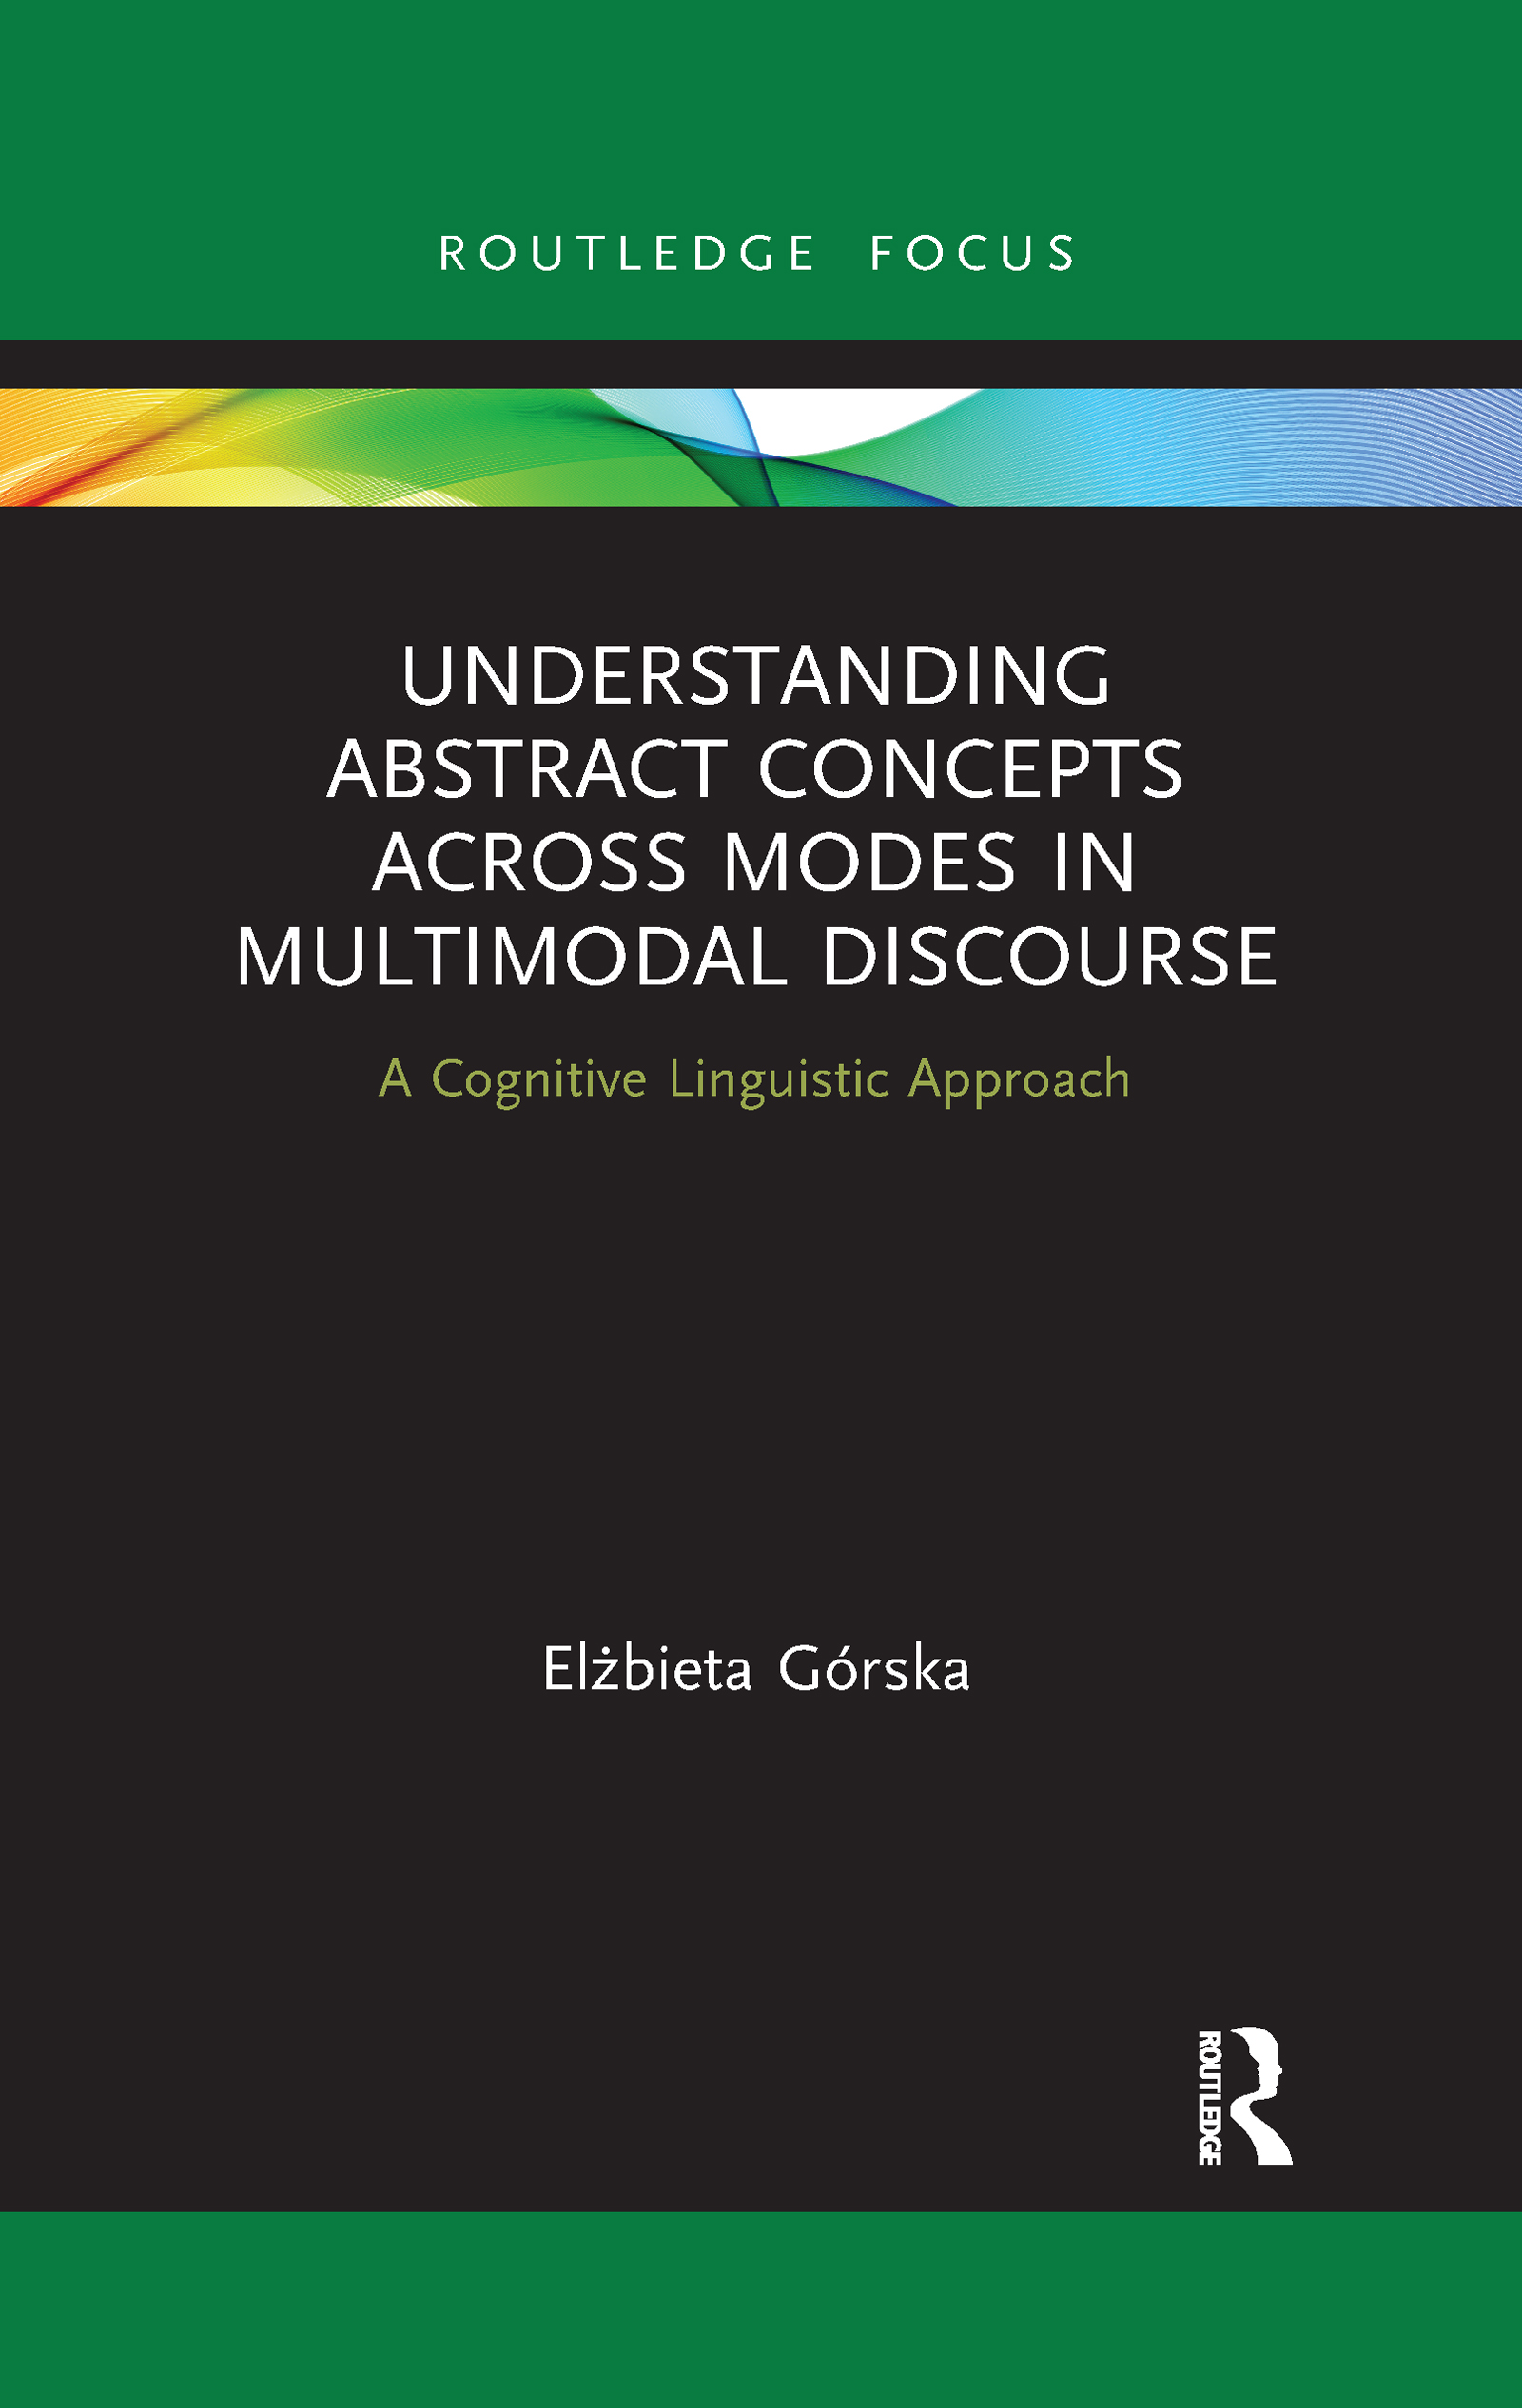 Understanding Abstract Concepts across Modes in Multimodal Discourse